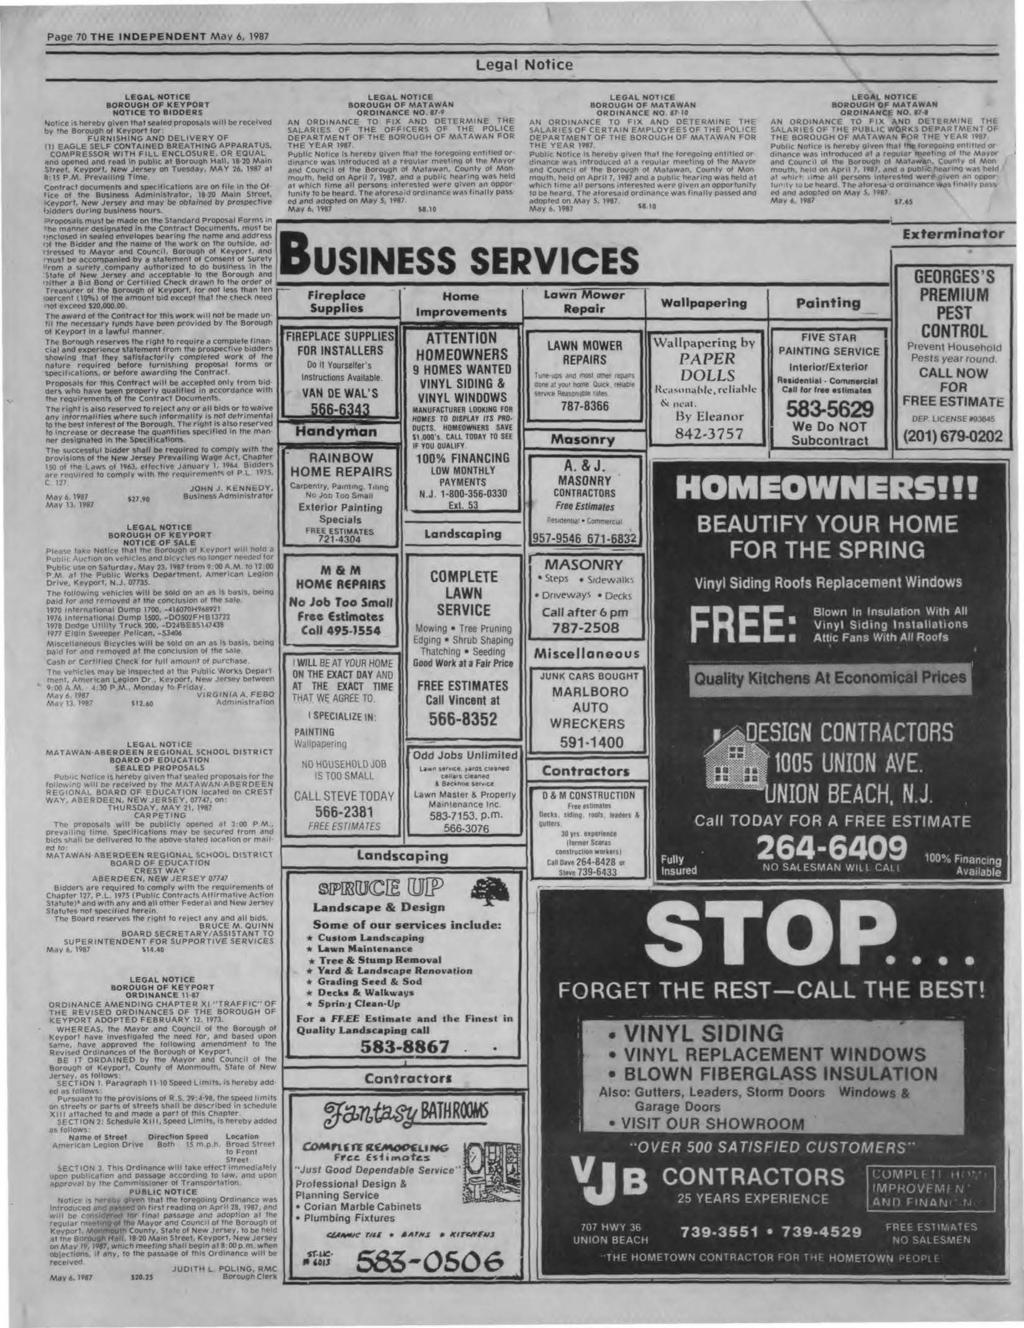 Police Sergeant Makes Charge That Captain Harassed Him Pdf Drkevin Light Comfort Ampamp Flexible Women Casual Slip On Shoes 5306 Brown Page 70 The Independent May 6 1987 Legal Notice Leg A L Borough Of K E Y P O R T